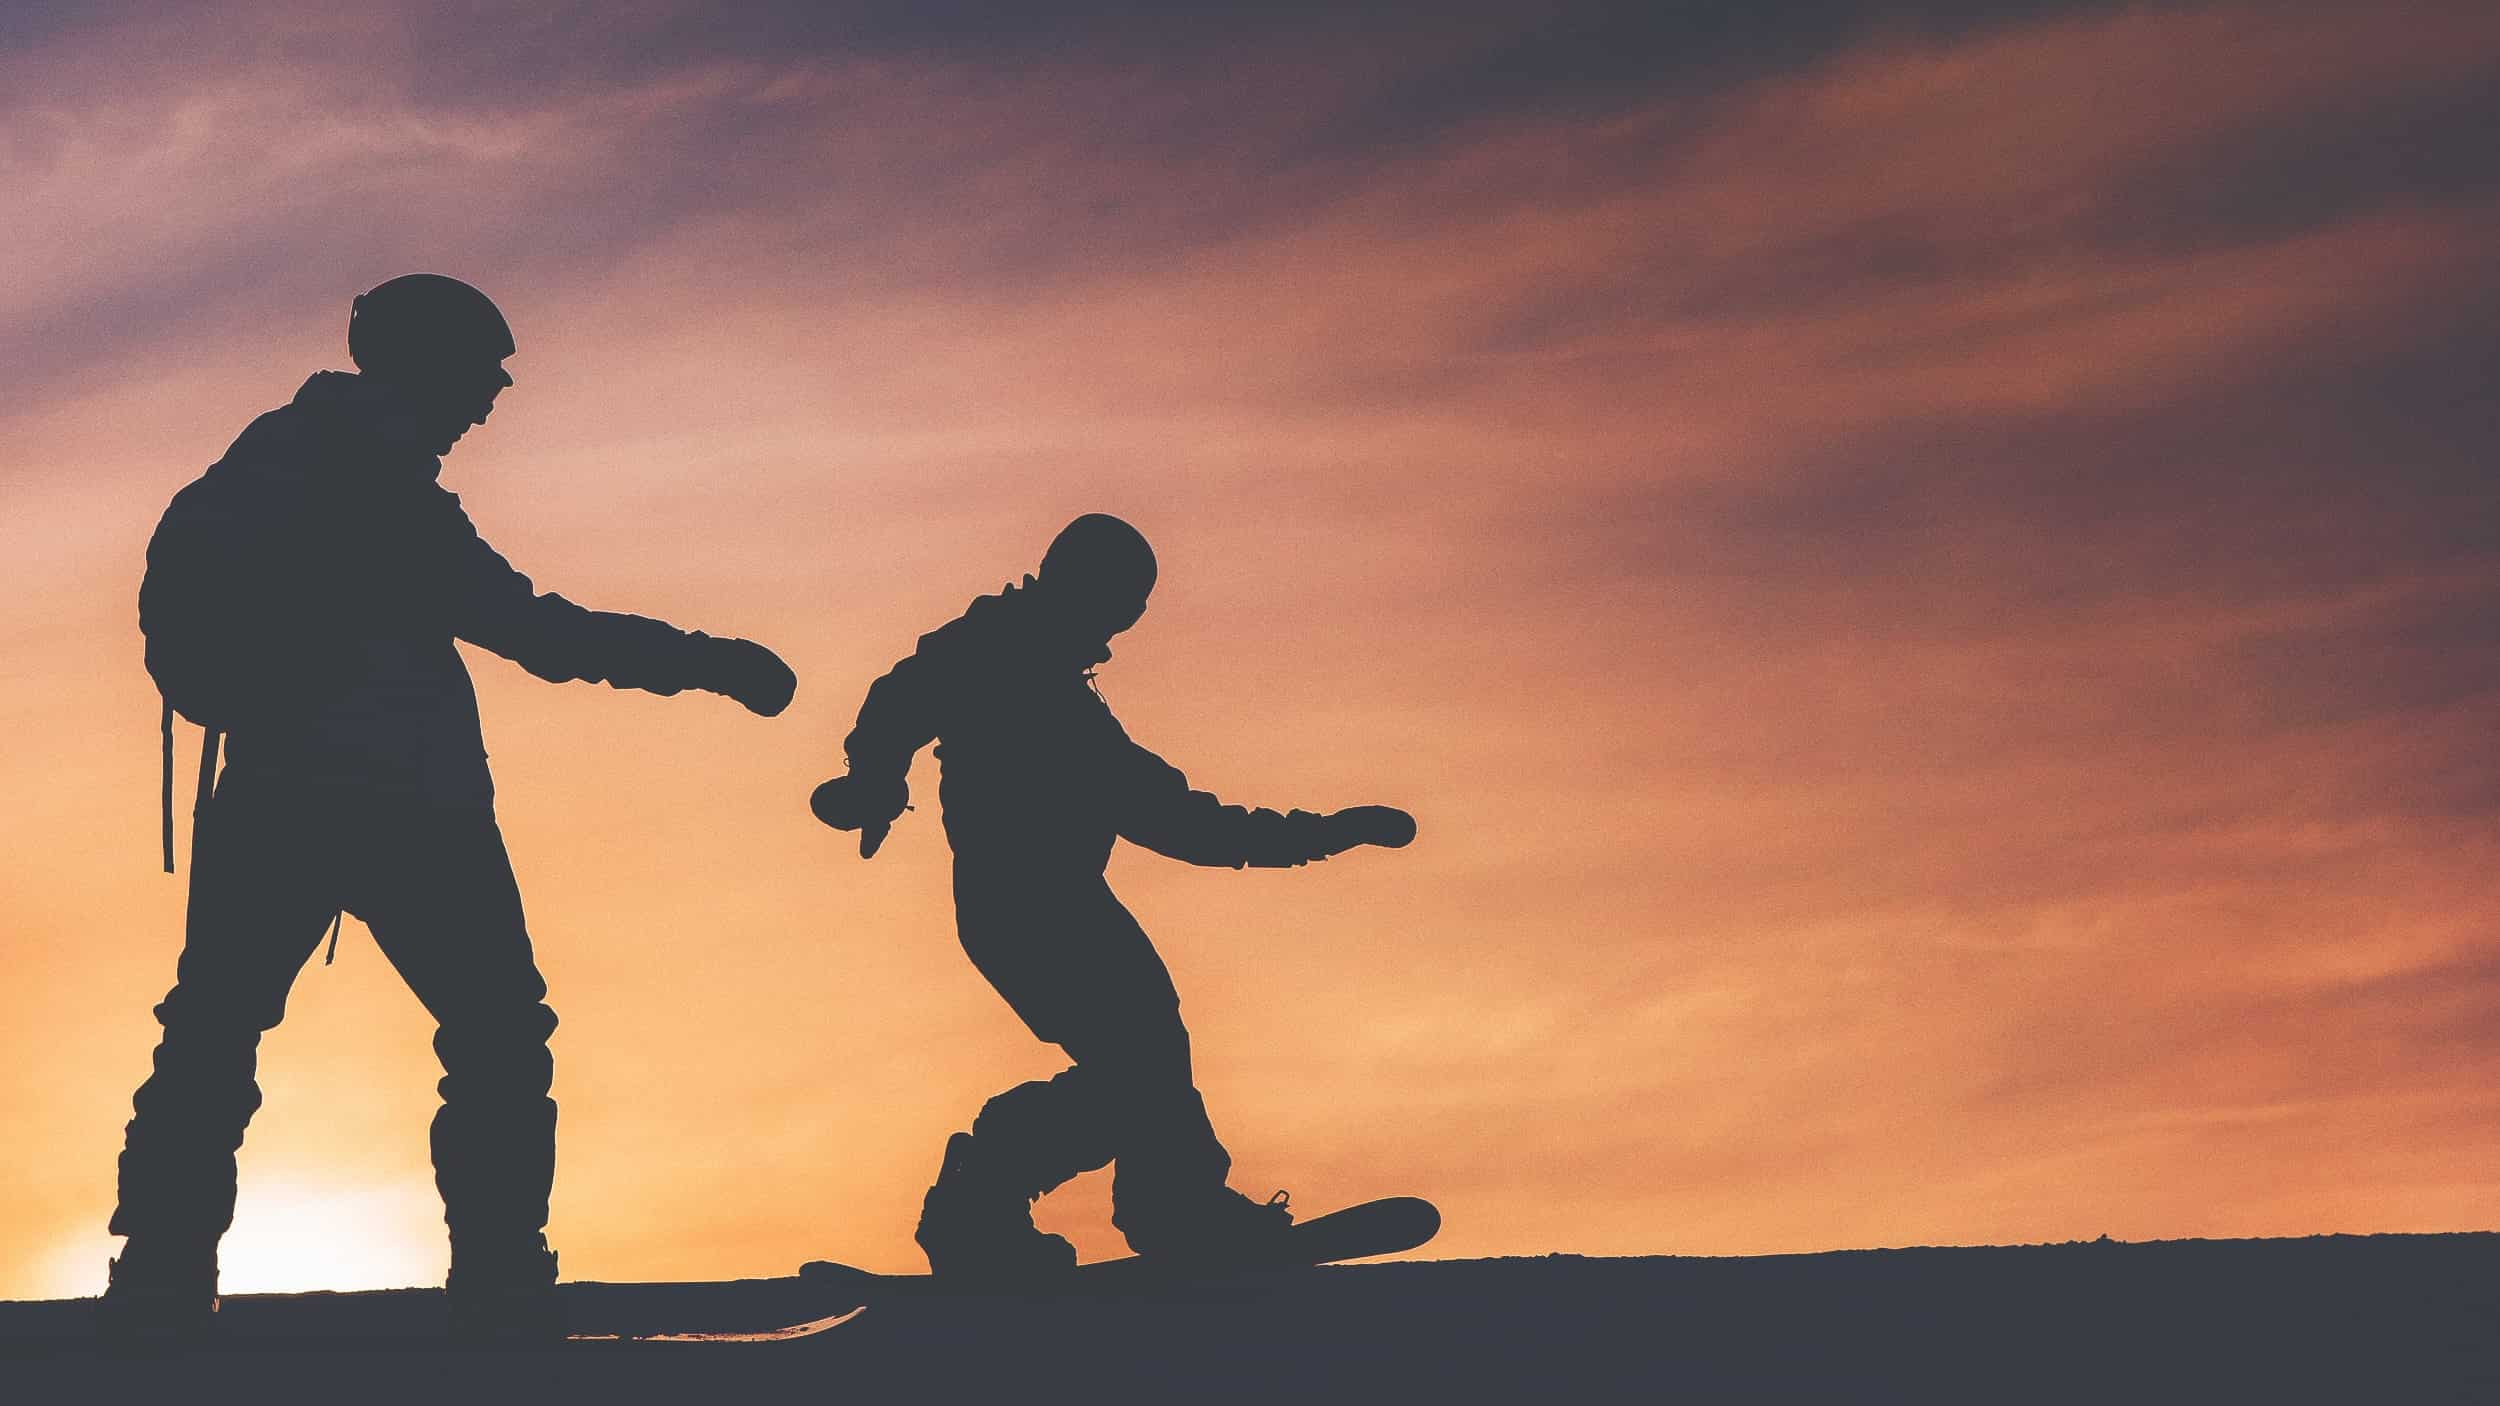 snowboarders in front of sunset